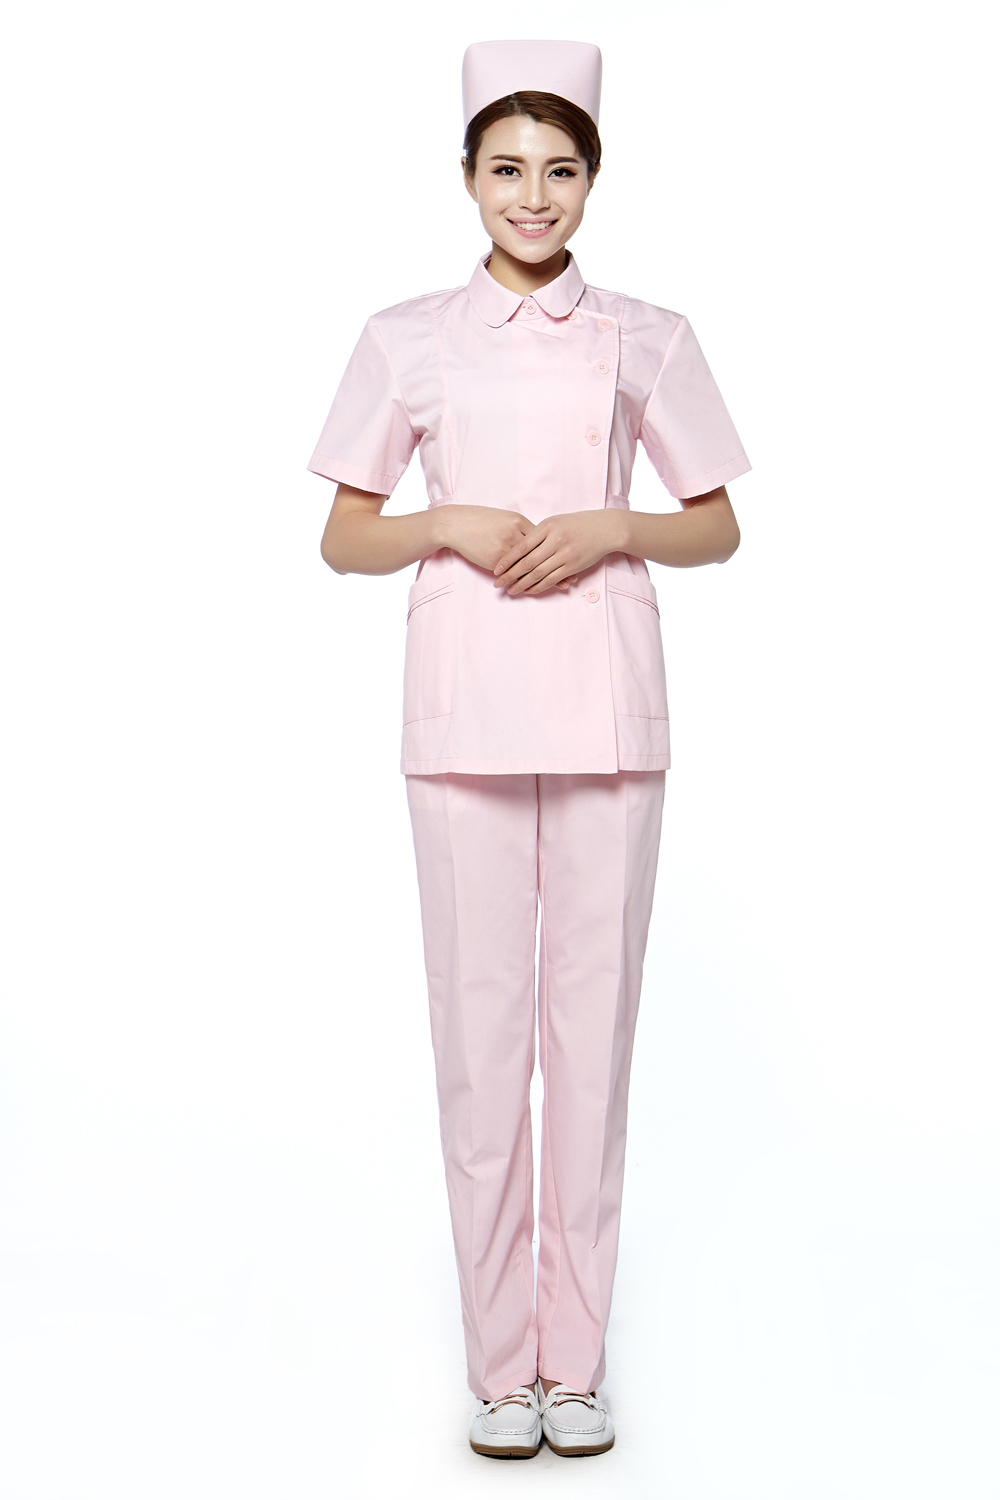 From medical and nurse tunics to scrubs and medical dresses, our infection-control compliant nursing uniform range is designed to meet the key specifications required by nurses and carers for working in a healthcare environment, such as durability, flexibility and safety.